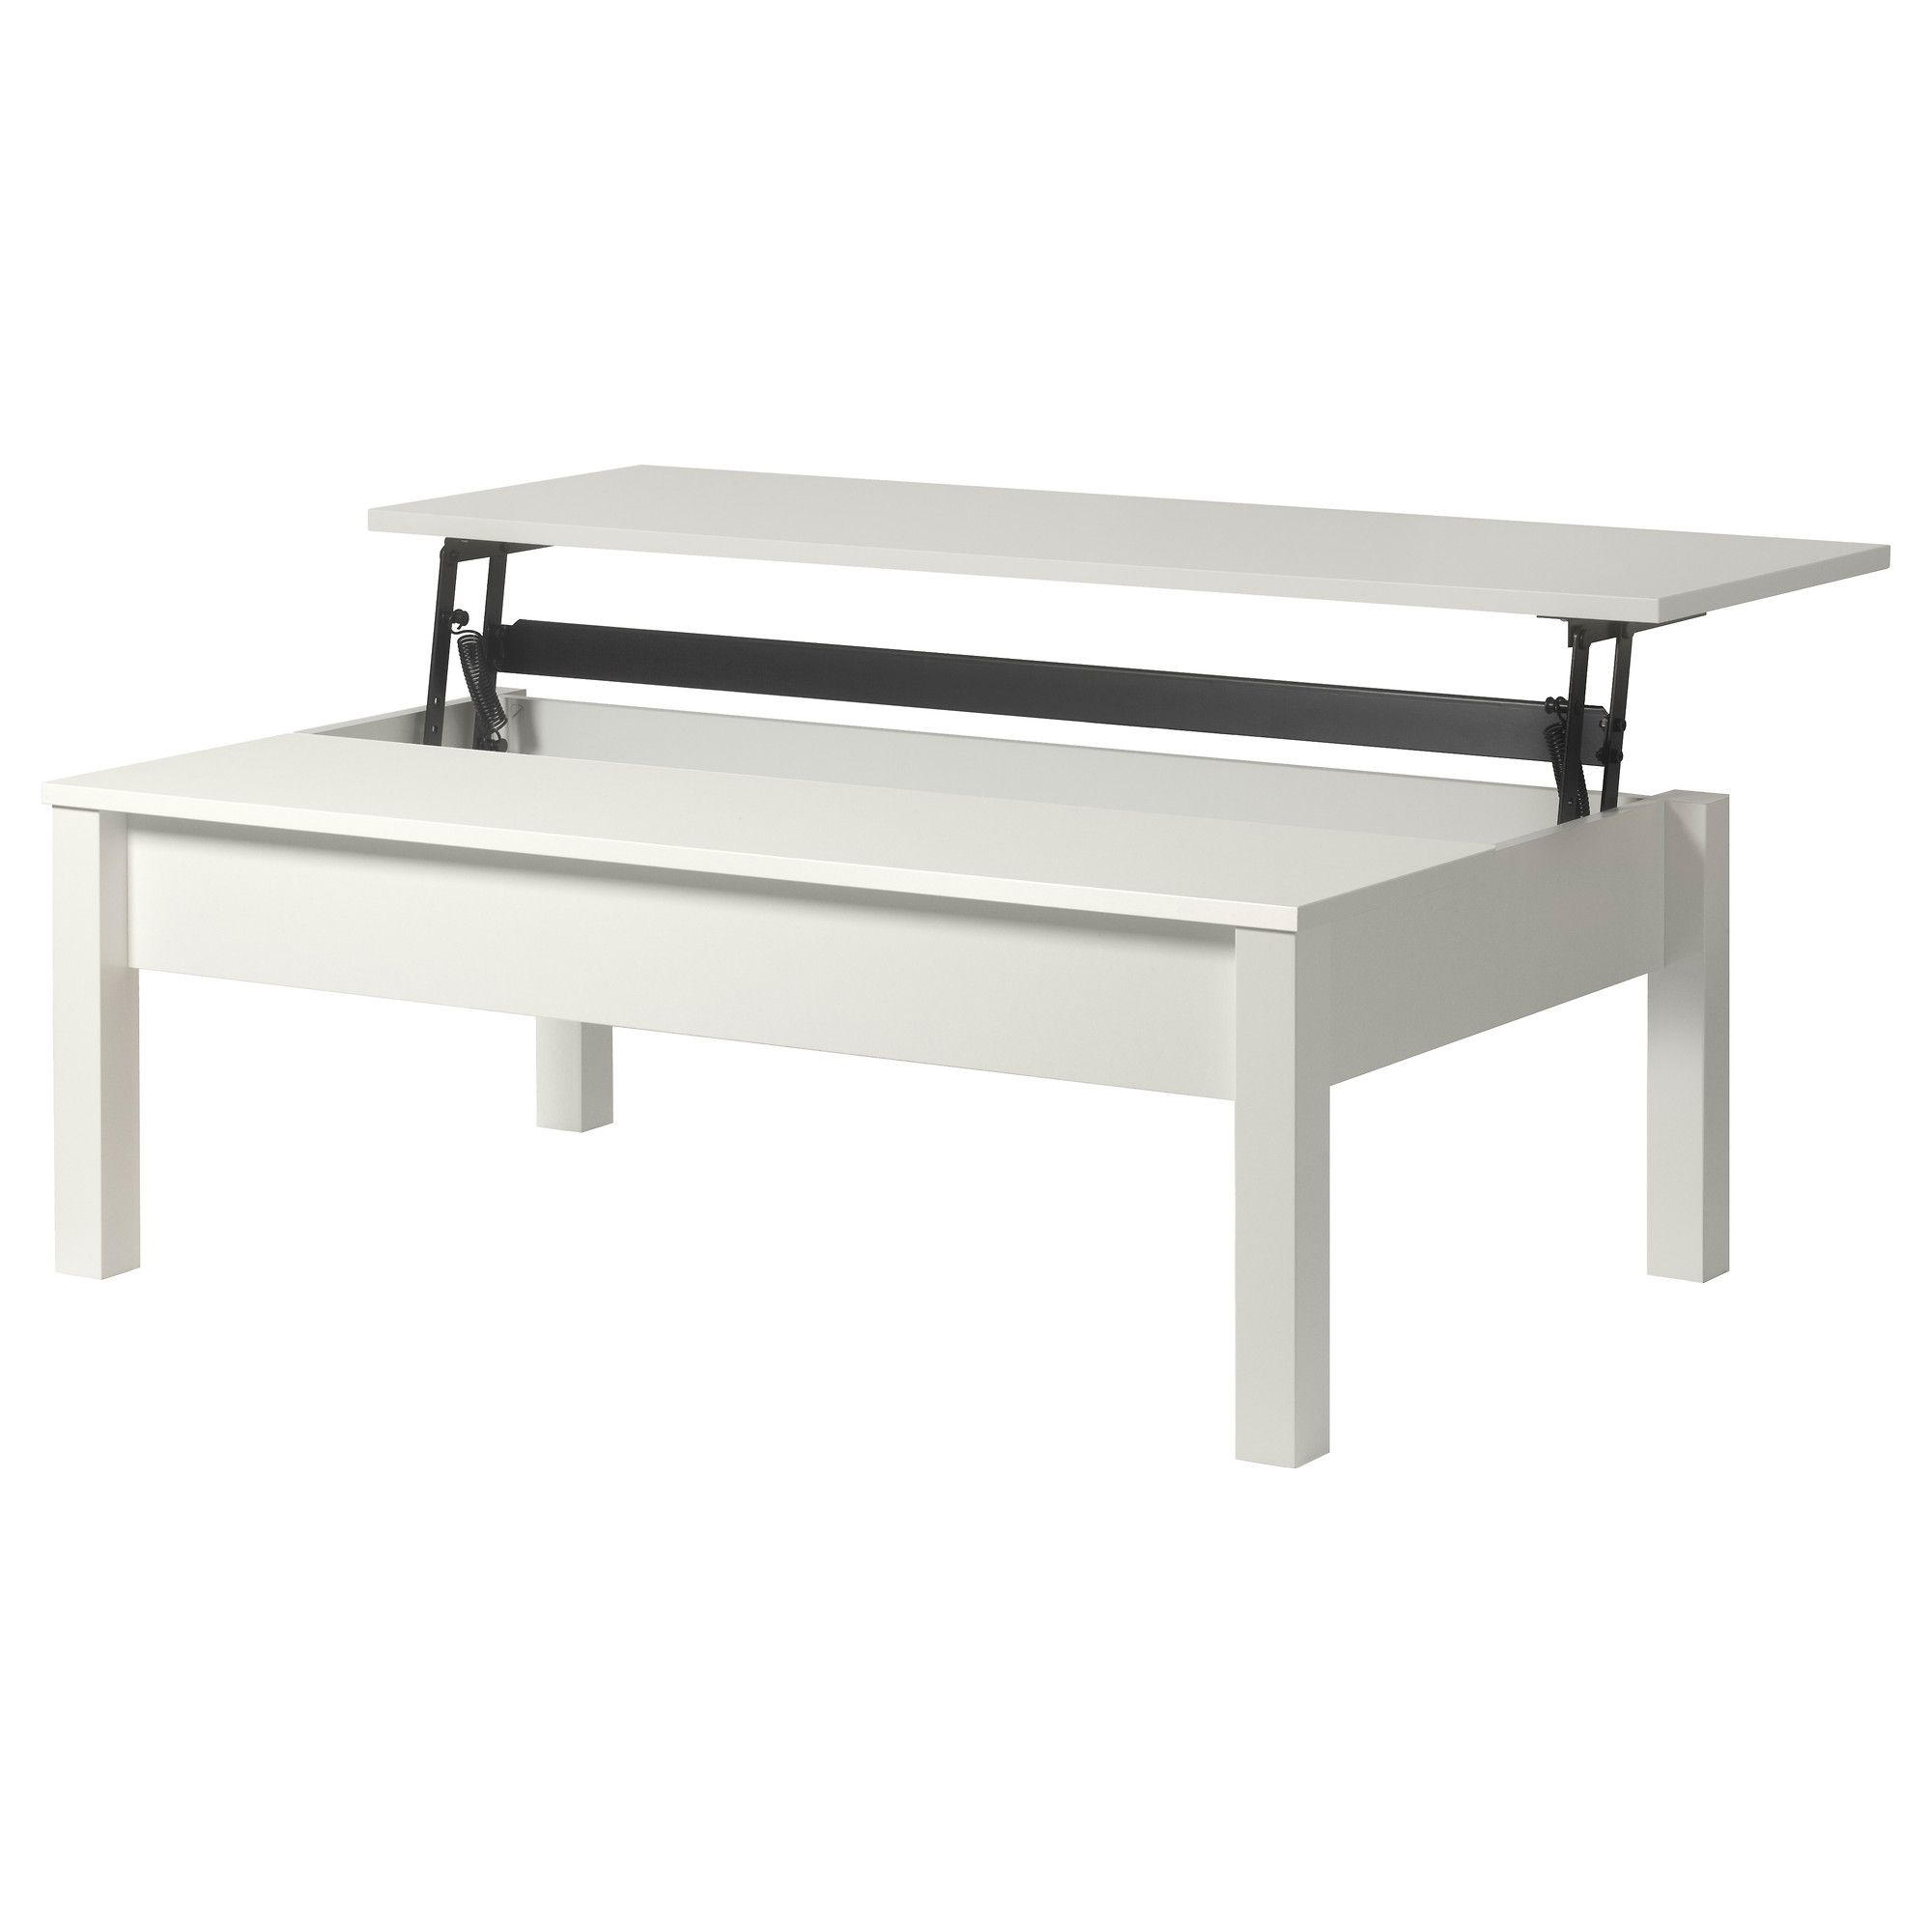 table basse a roulette ikea latest vangsta extendable table white x cm ikea table a roulettes. Black Bedroom Furniture Sets. Home Design Ideas